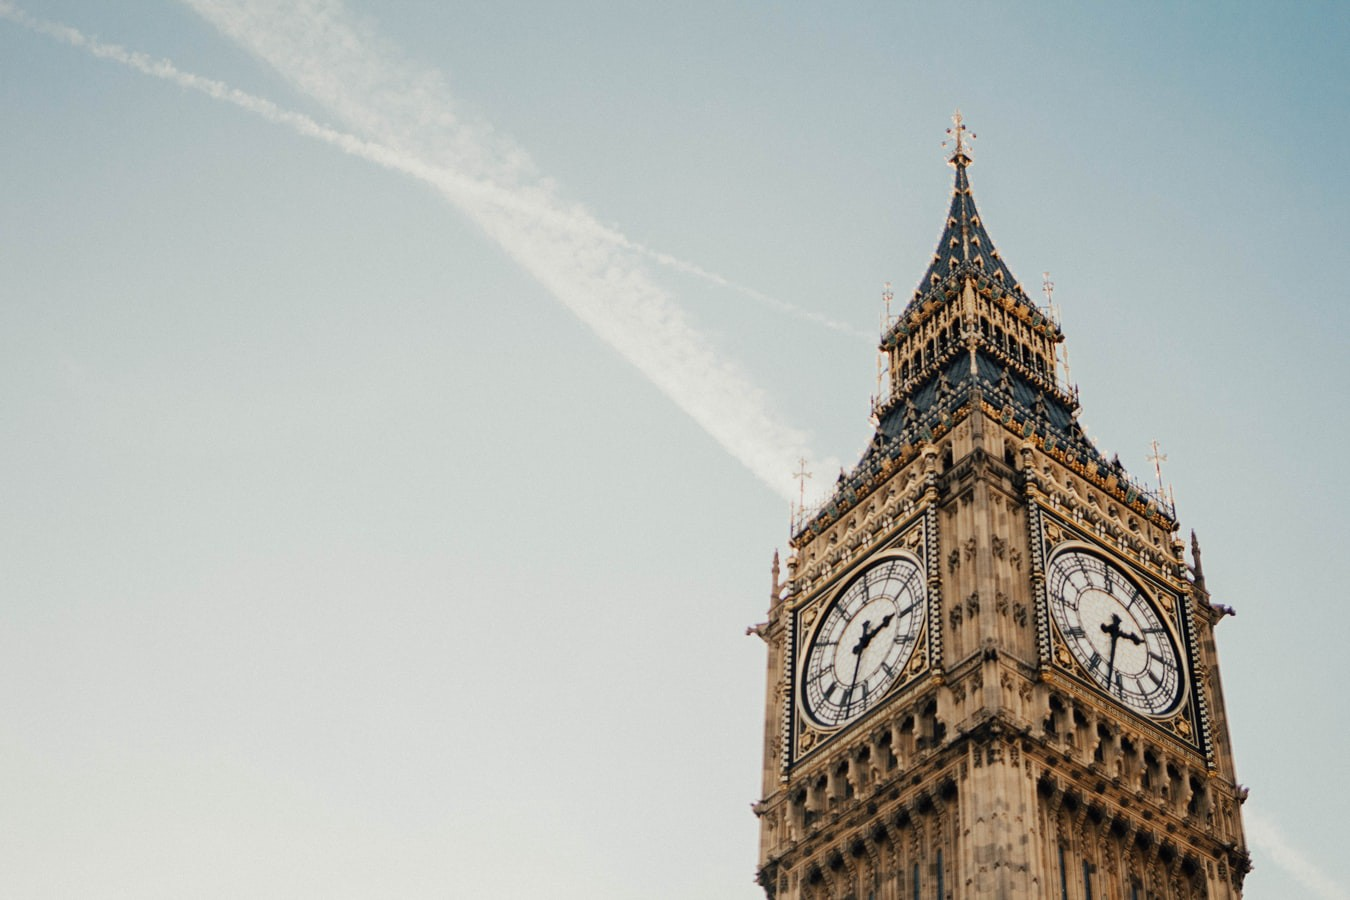 A picture of Big Ben's clock, with vapor trails in the sky behind.